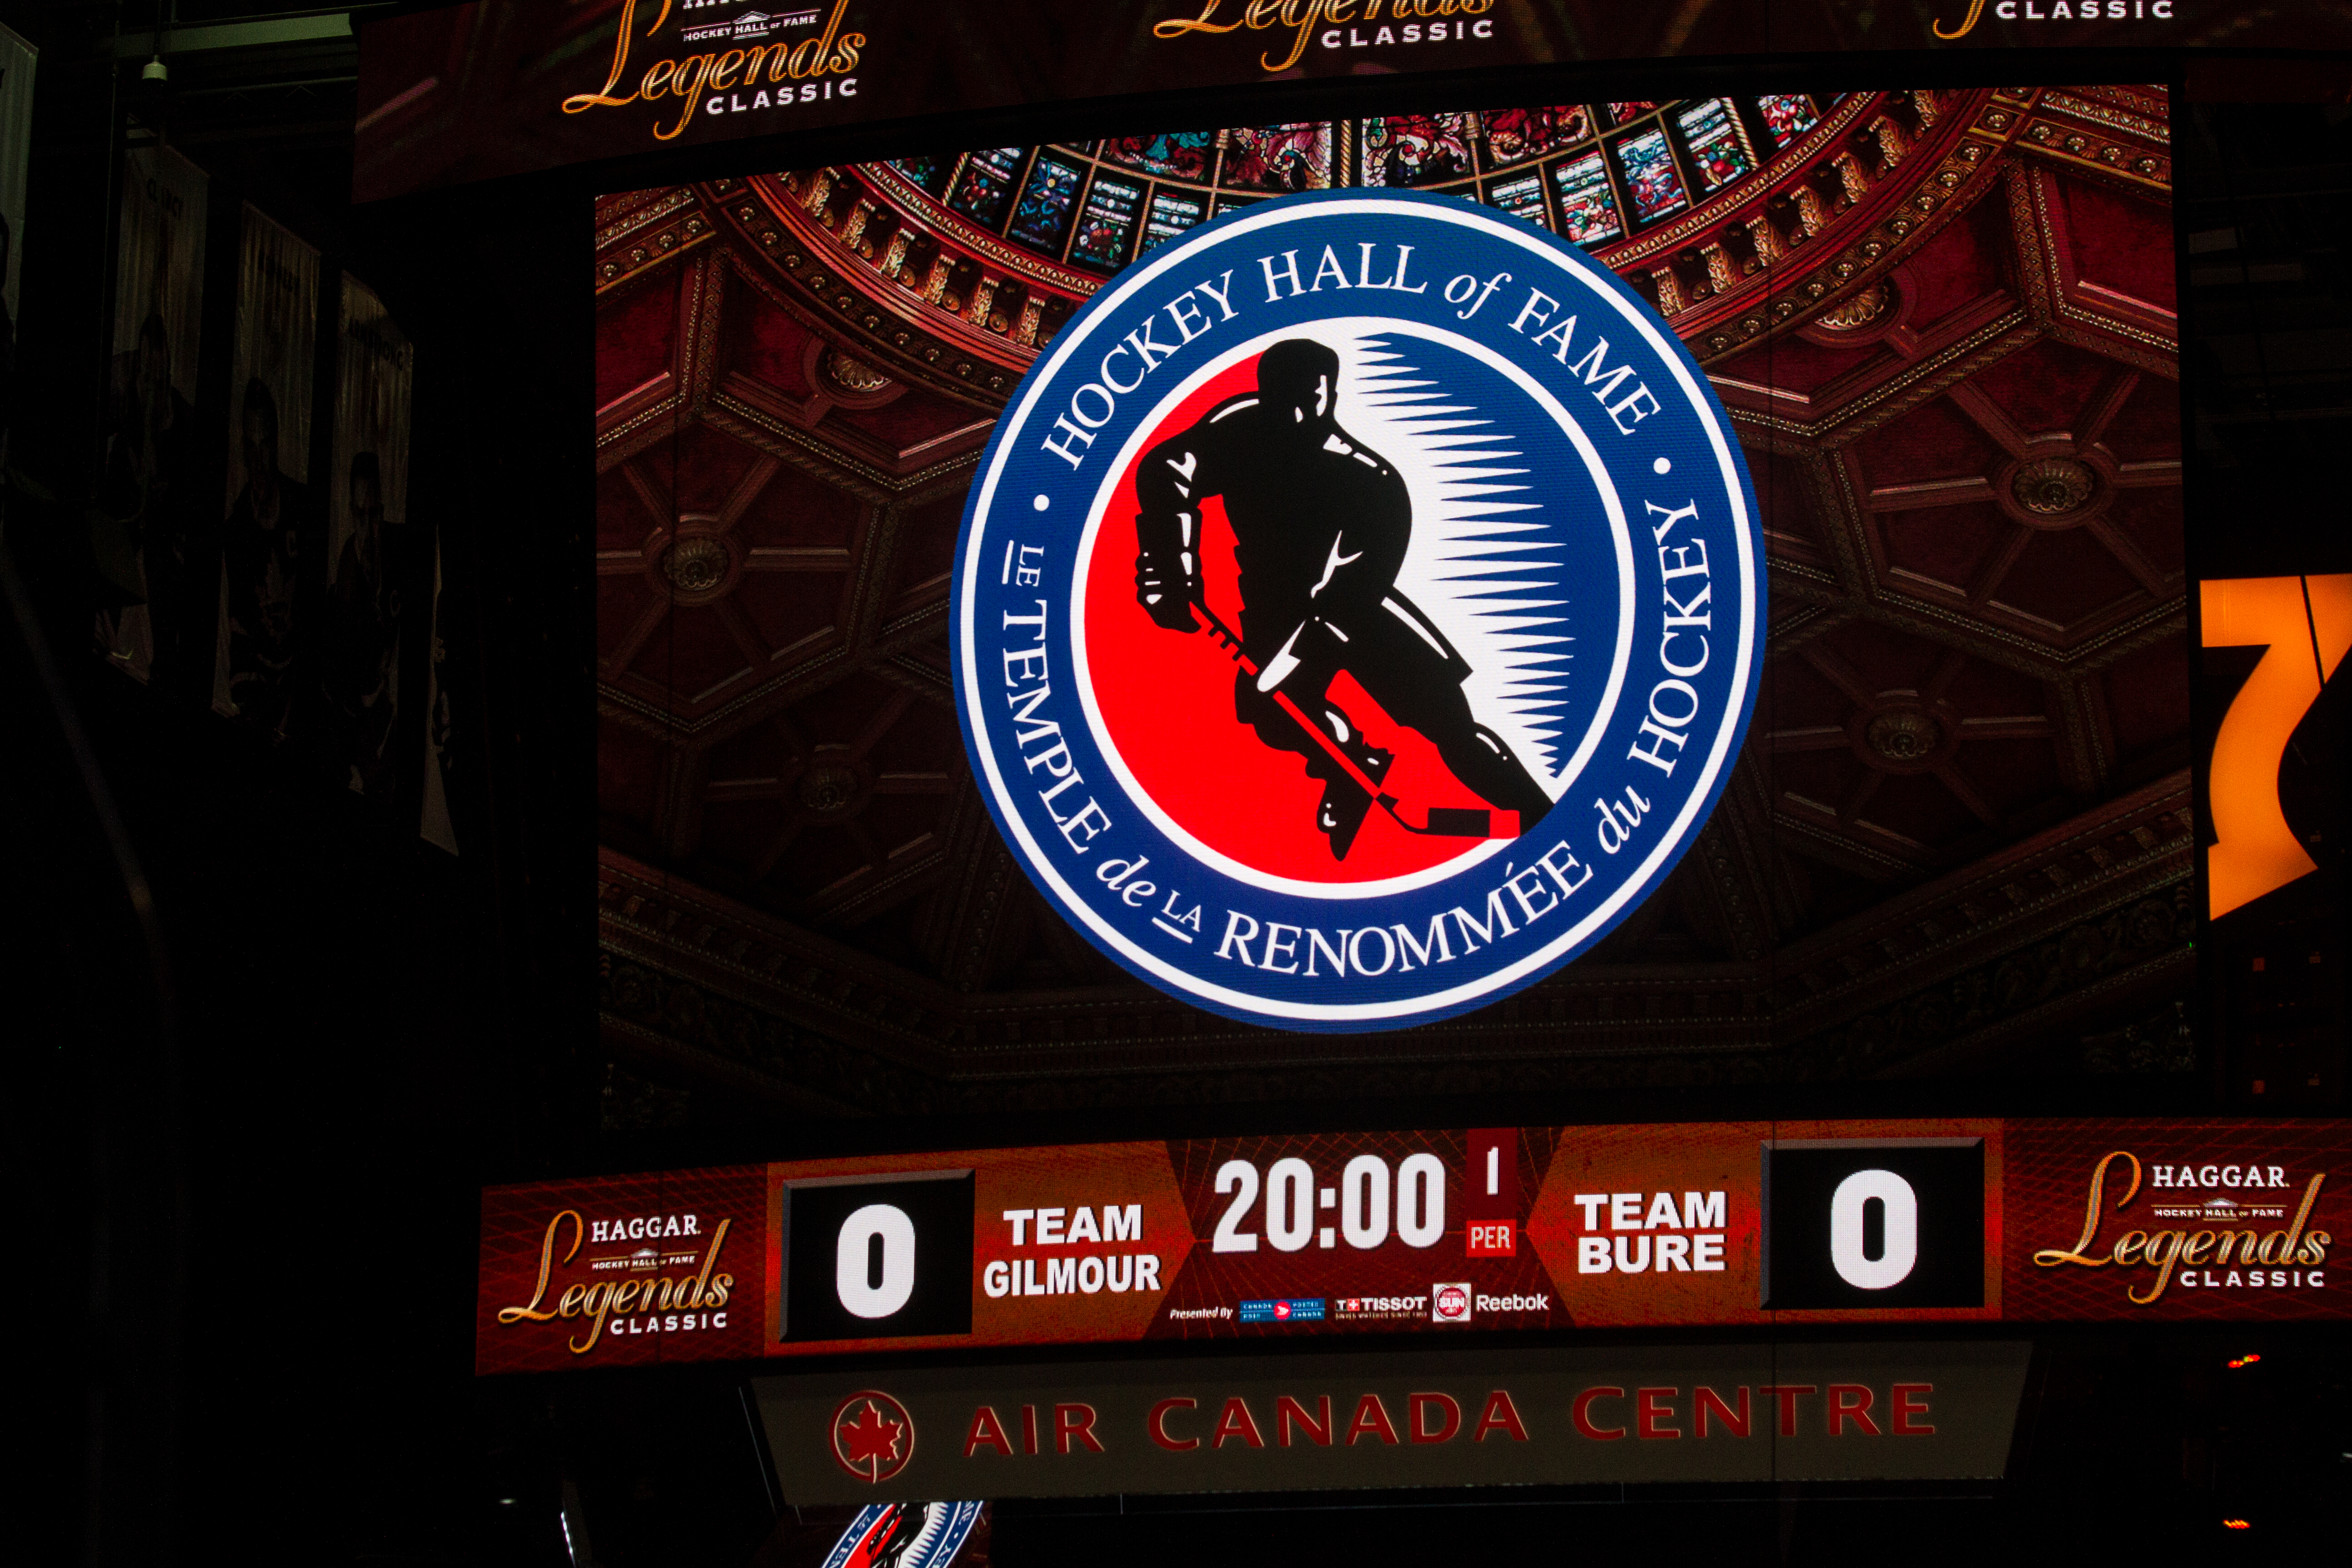 HHOF Inductions 2015